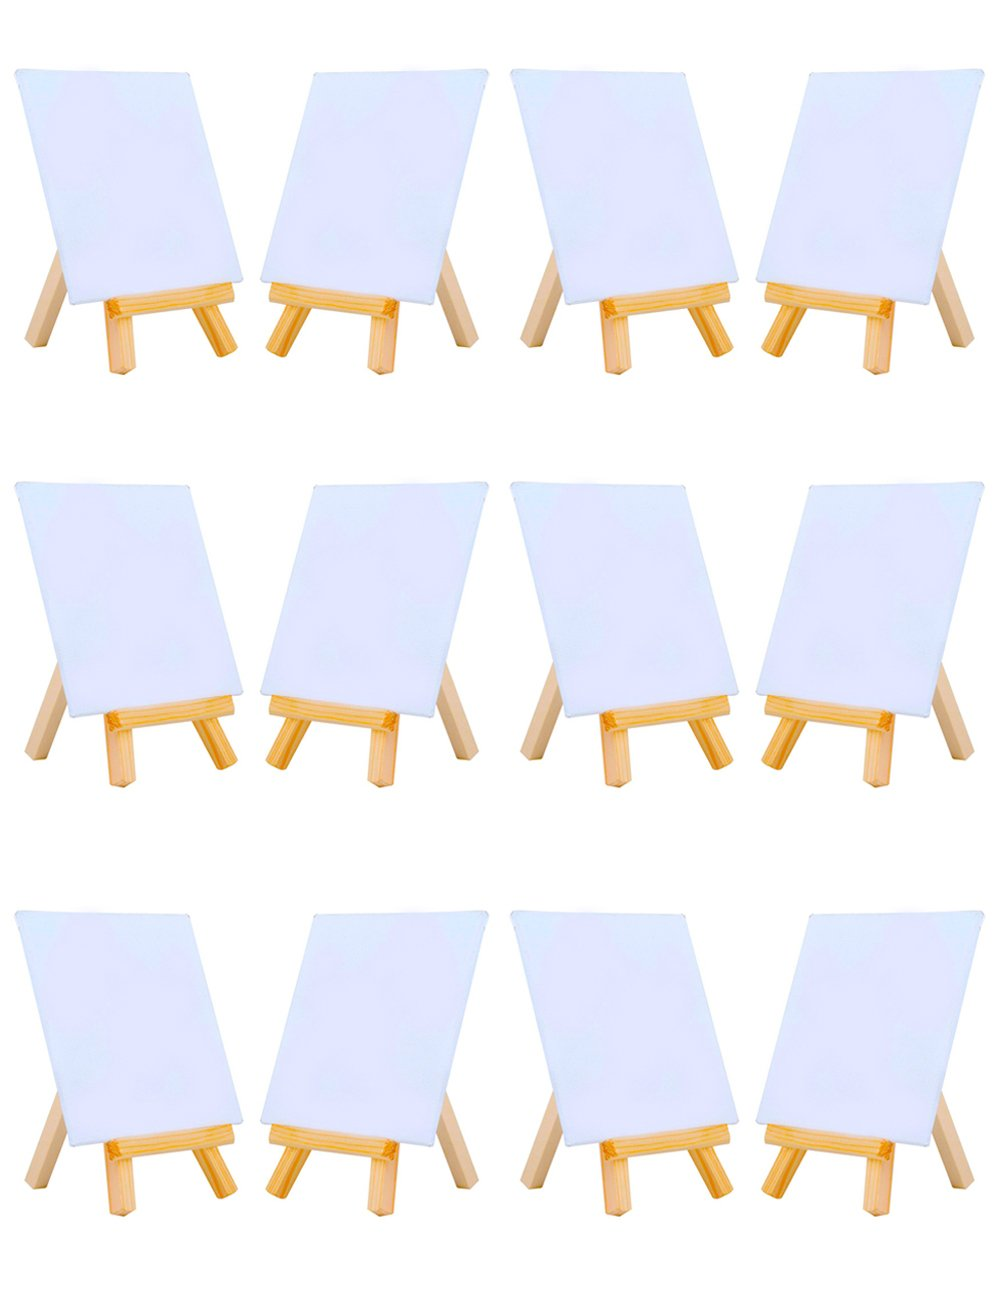 MEEDEN 4 by 4 Inch Mini Canvas Panels Combined with 3 by 5 Inch Tiny Wood Easels Set for Paintings Craft Small Acrylics Oil Projects, Pack of 12 by MEEDEN